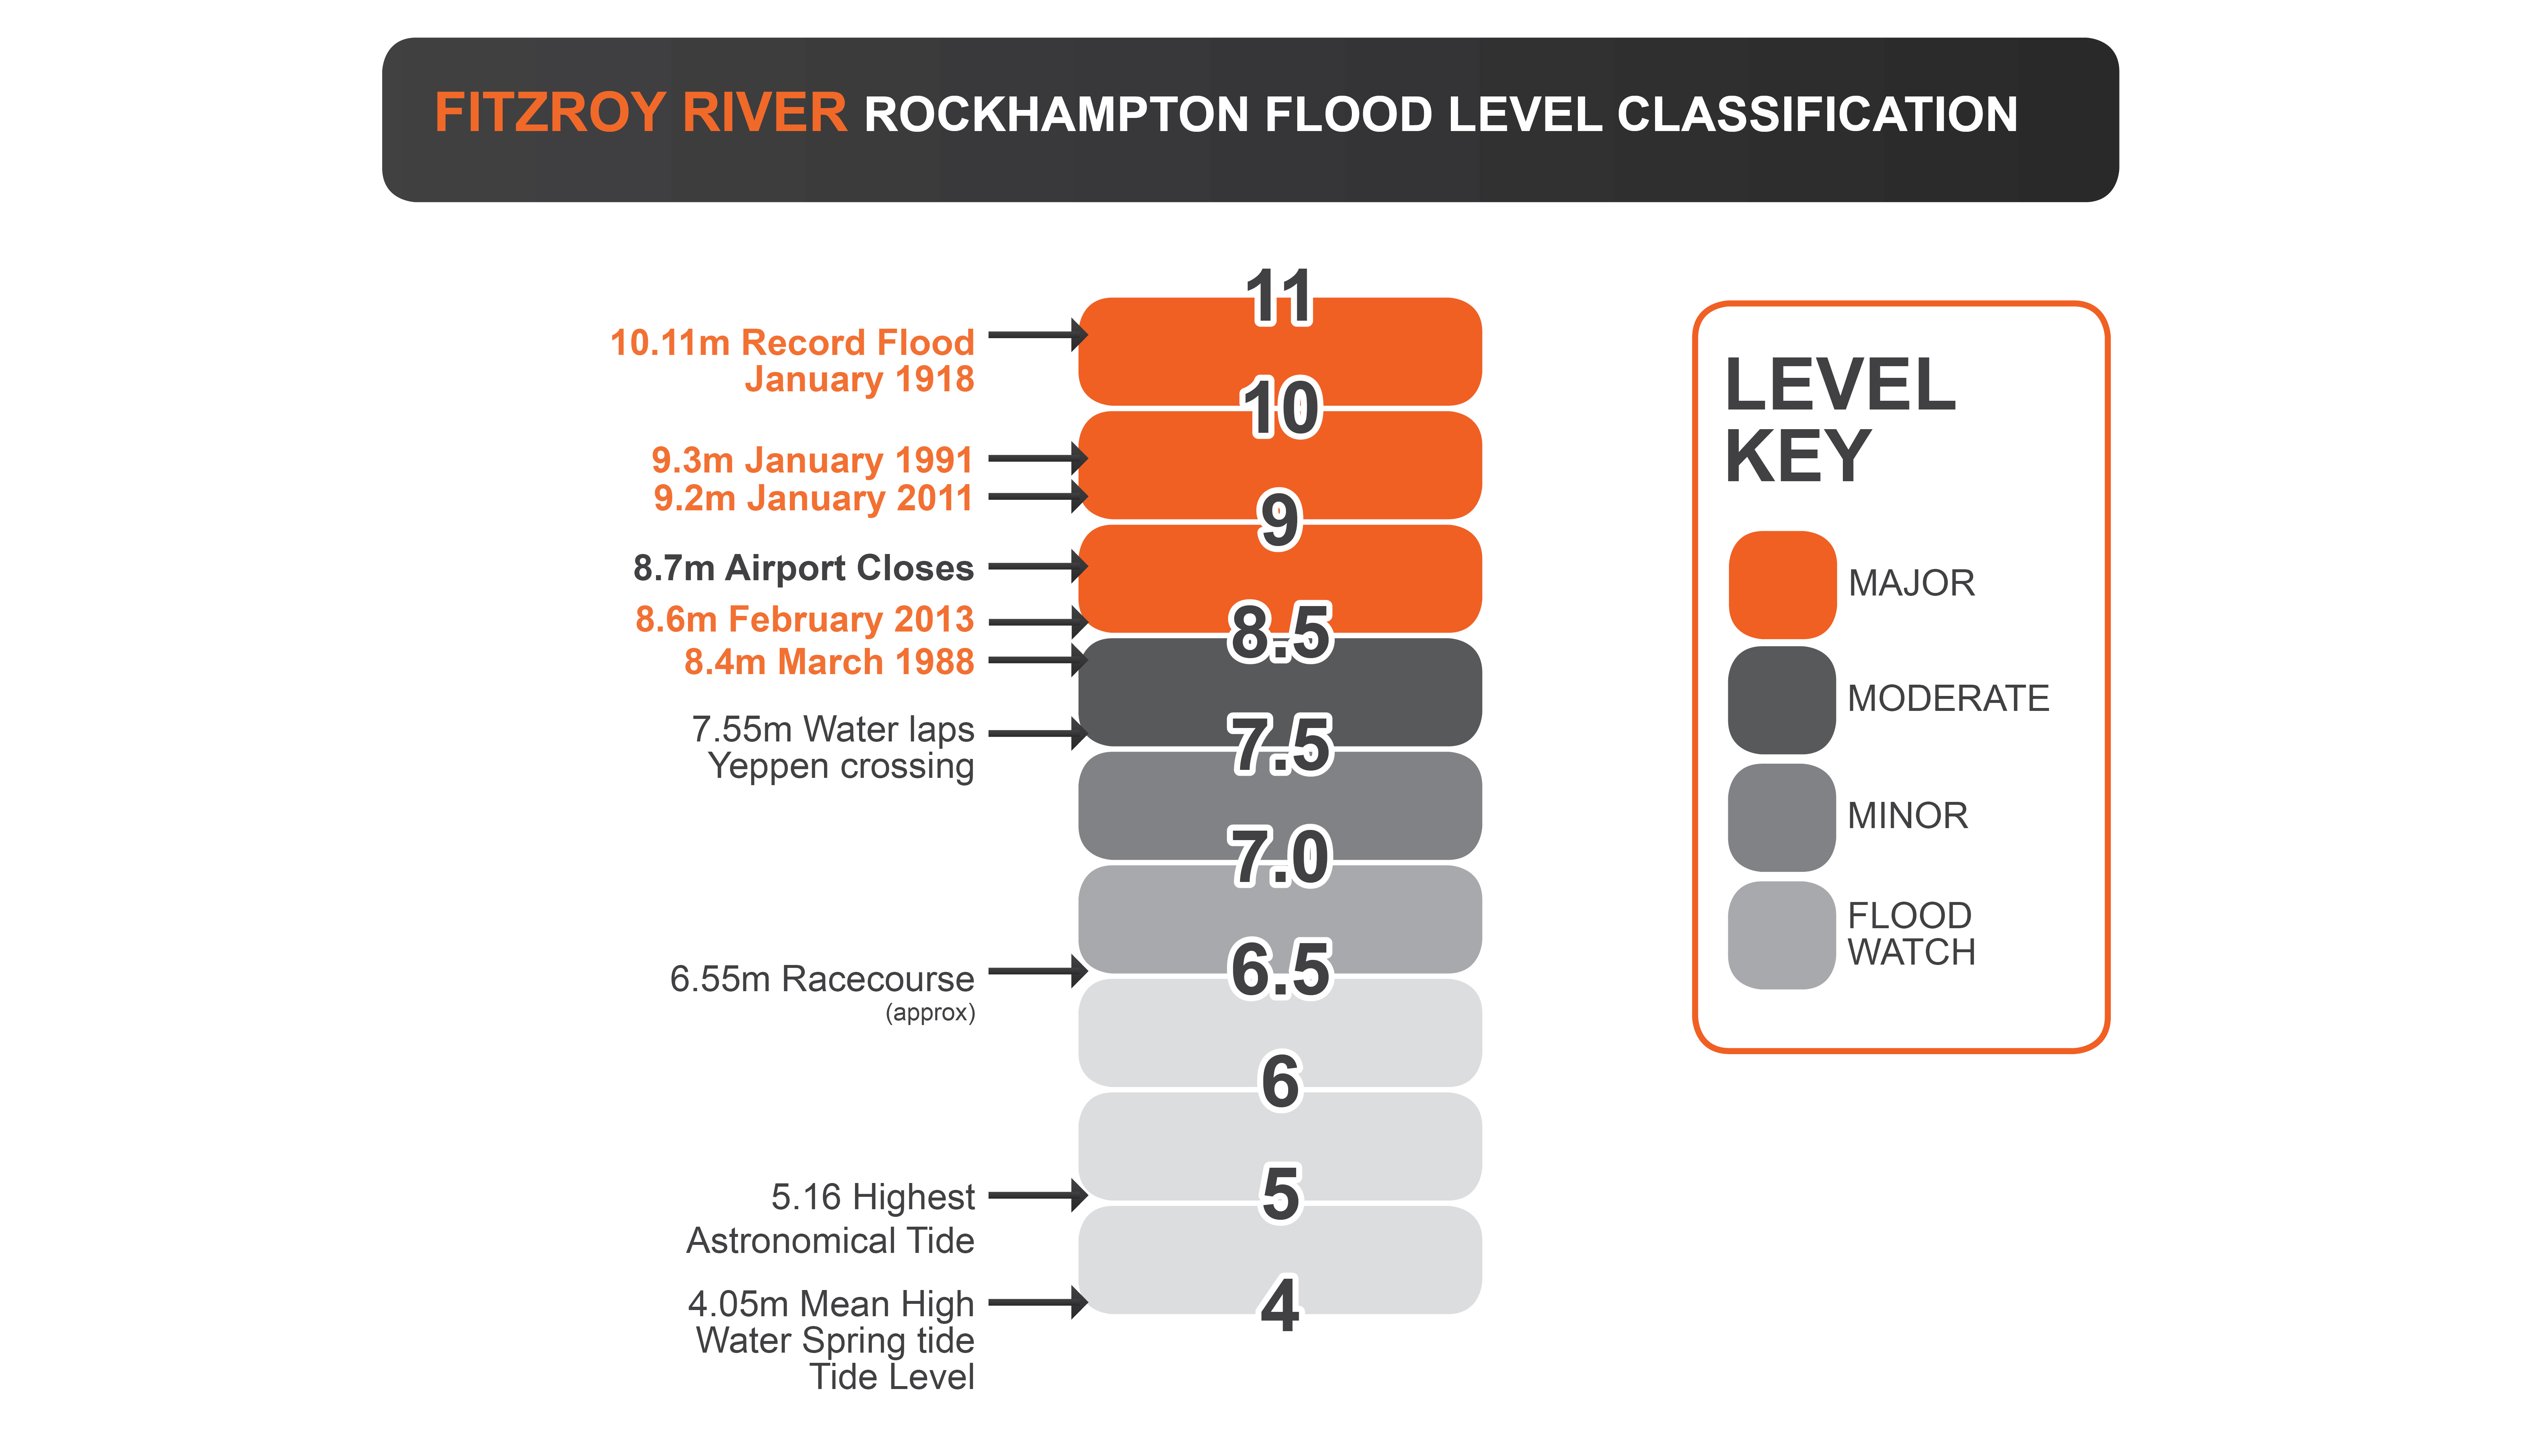 Fitzroy-River-Rockhampton-Flood-Level-Classification